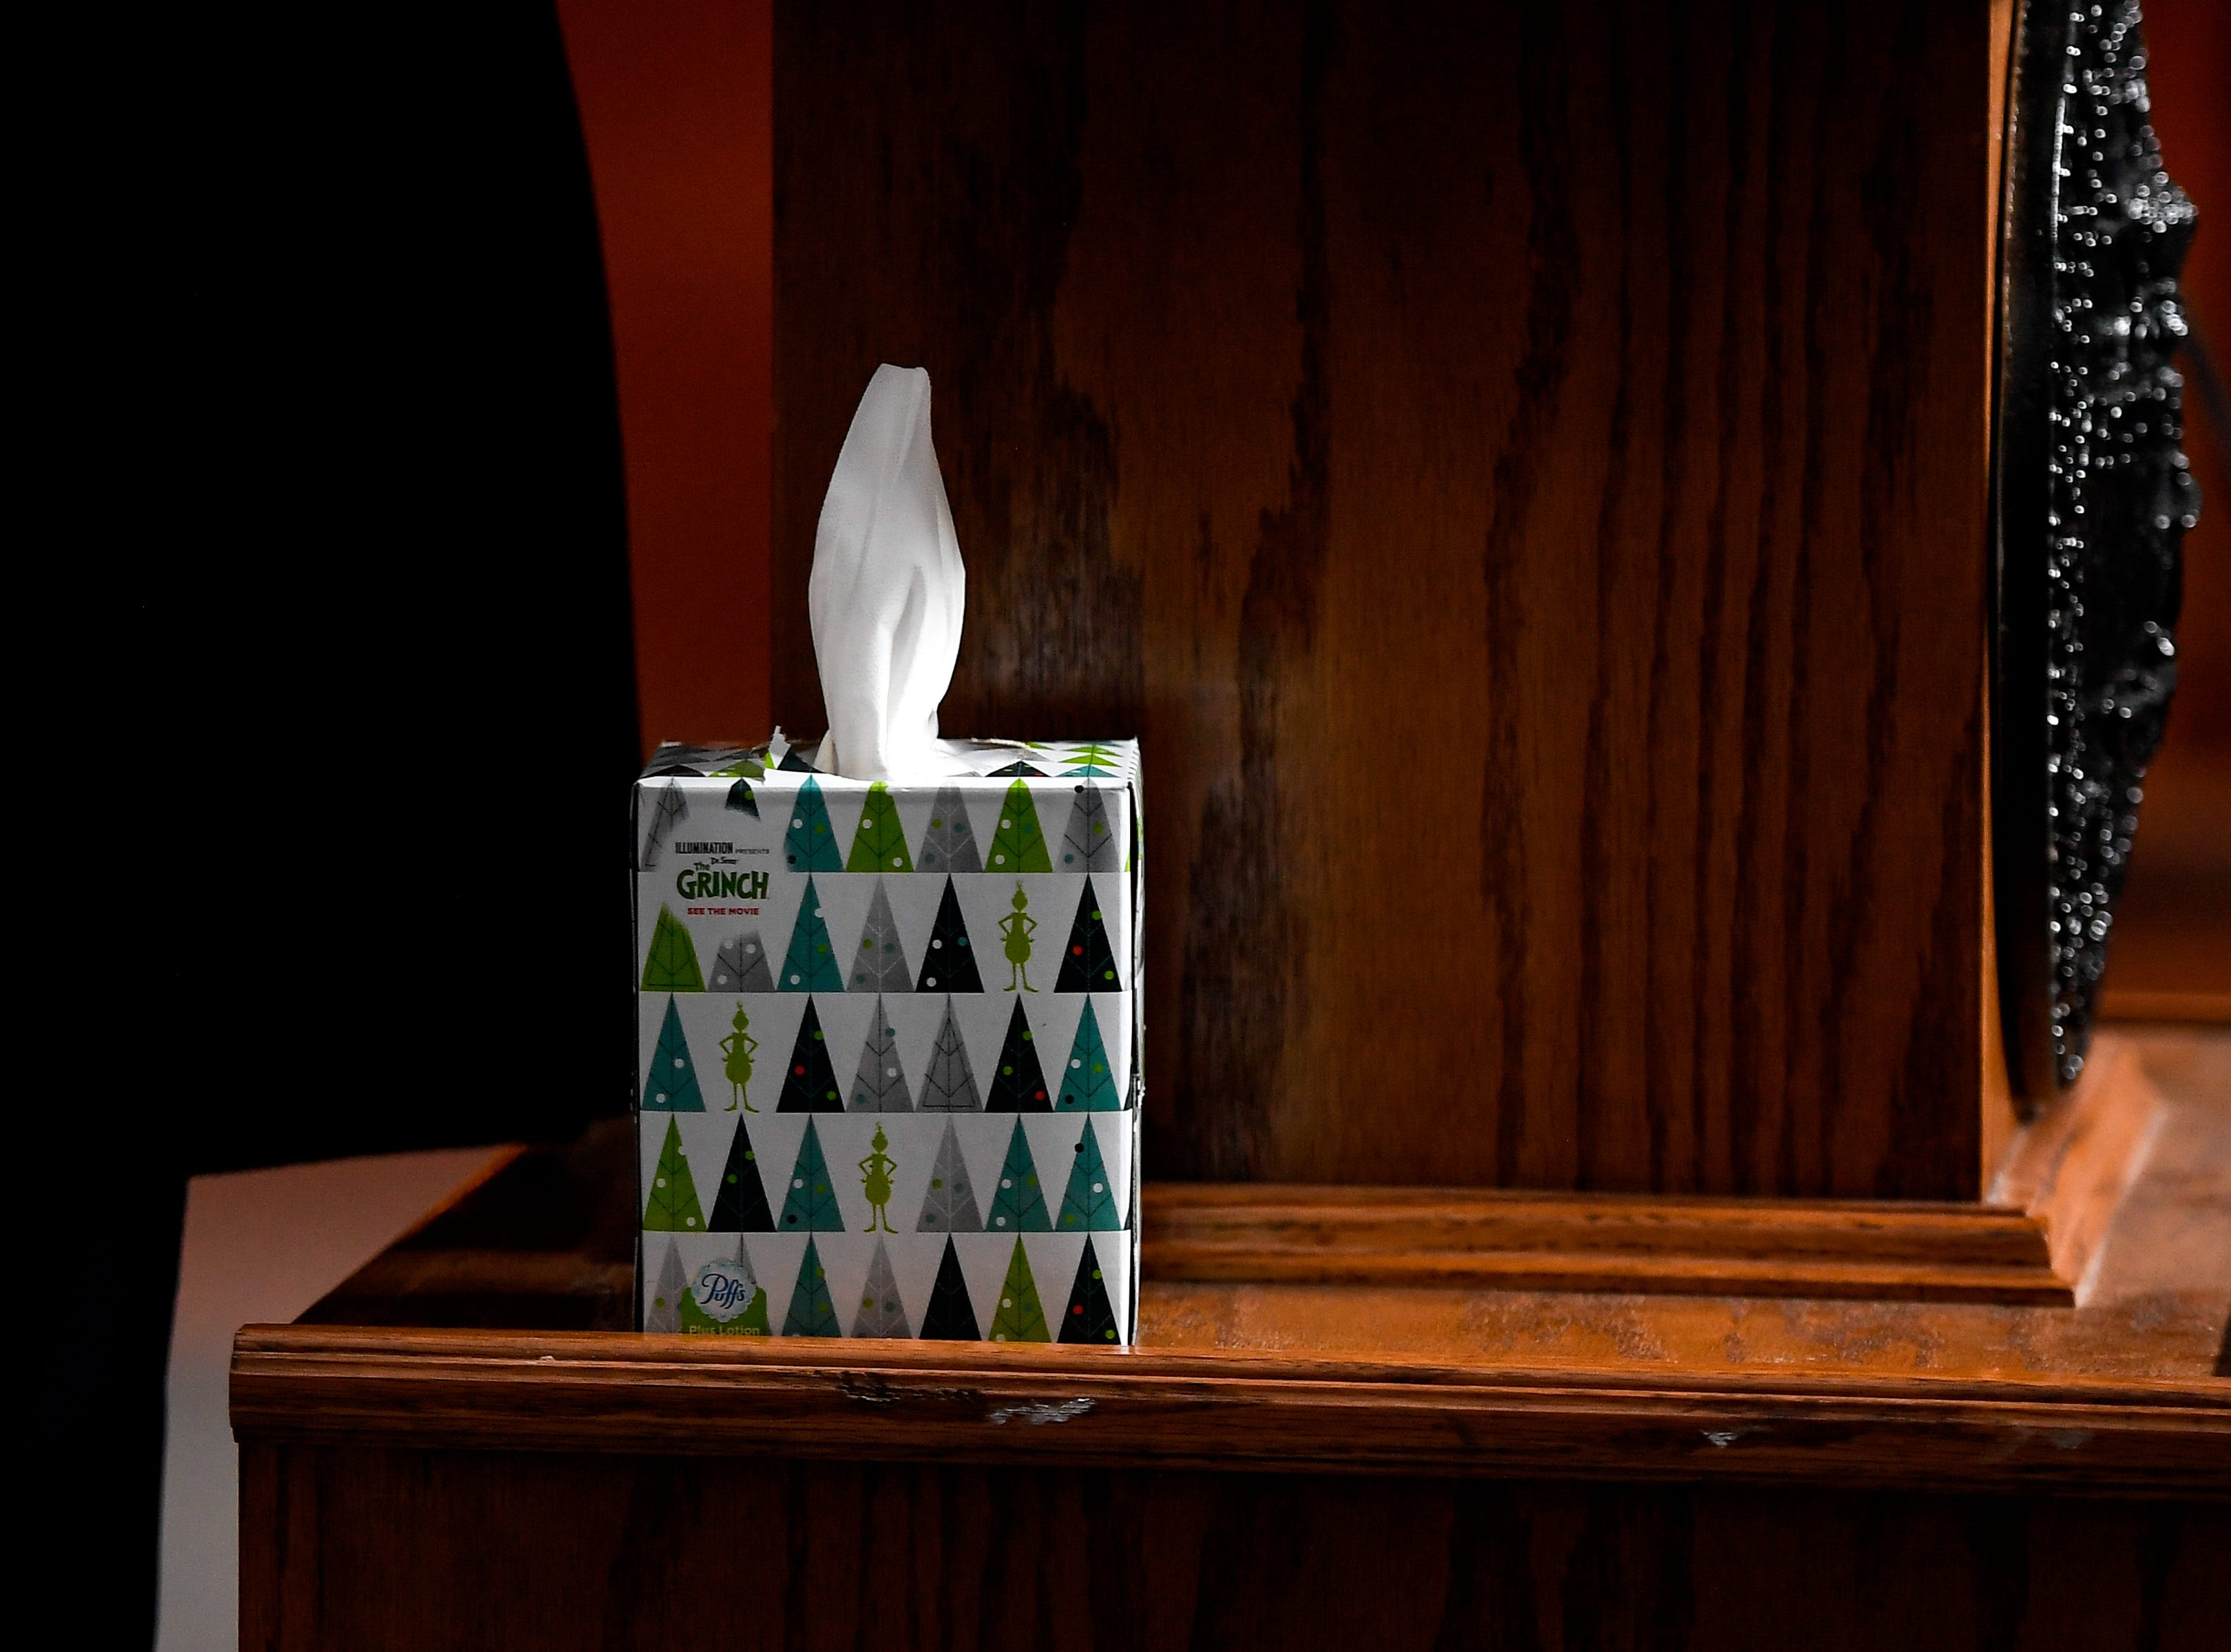 A box of tissues sits on the podium during the news conference outside Riverbend Maximum Security Institution after the execution of Tennessee death row inmate David Earl Miller on Thursday, Dec. 6, 2018 in Nashville, Tenn. Miller was sentenced to death for the 1981 murder of Lee Standifer, 23, in Knoxville.